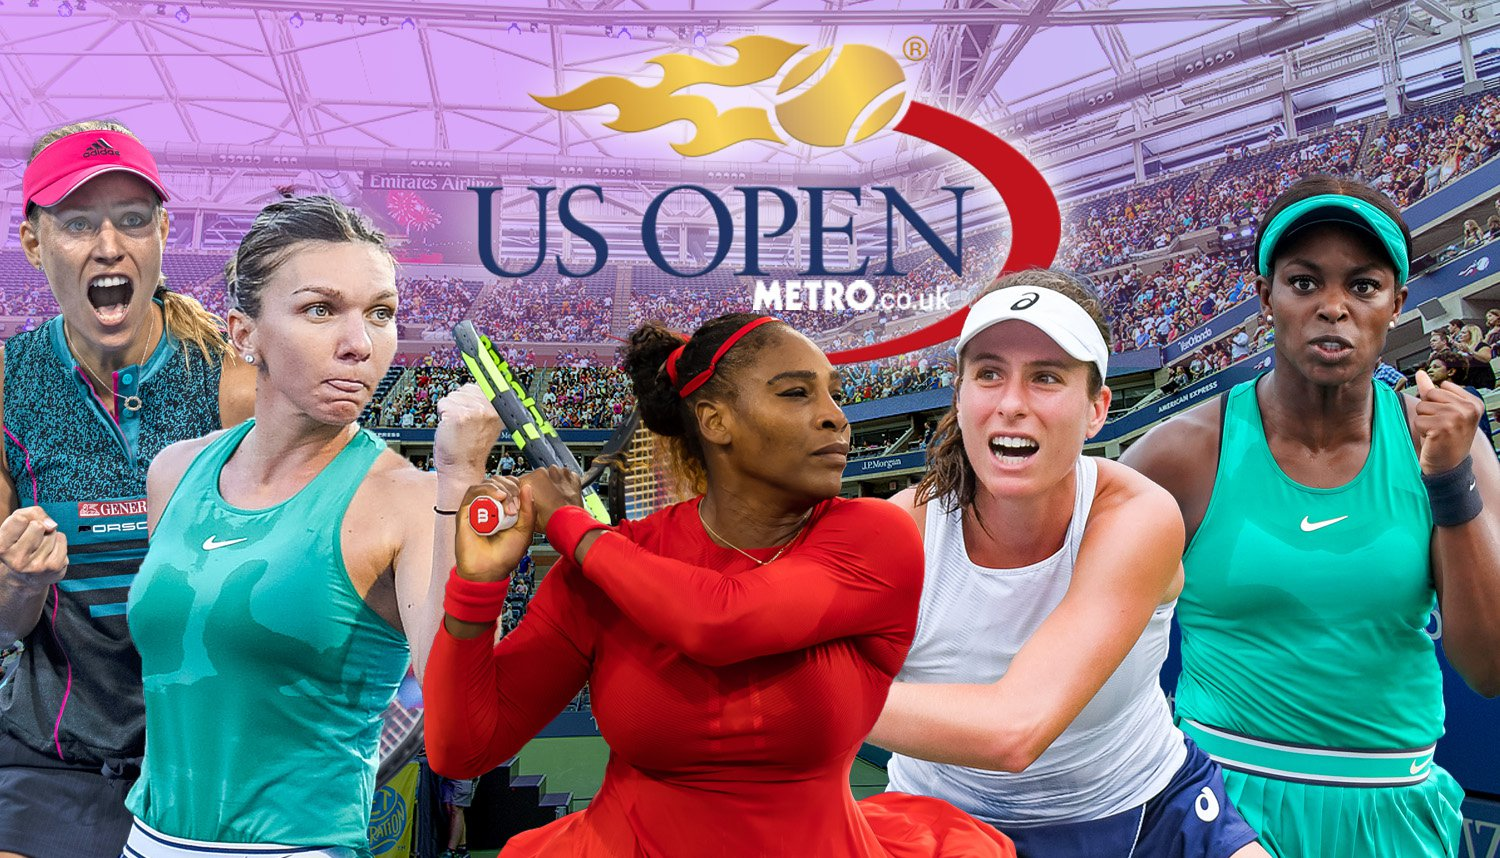 US Open preview: Record-chasing Serena Williams returns to lead tough-to-split pack